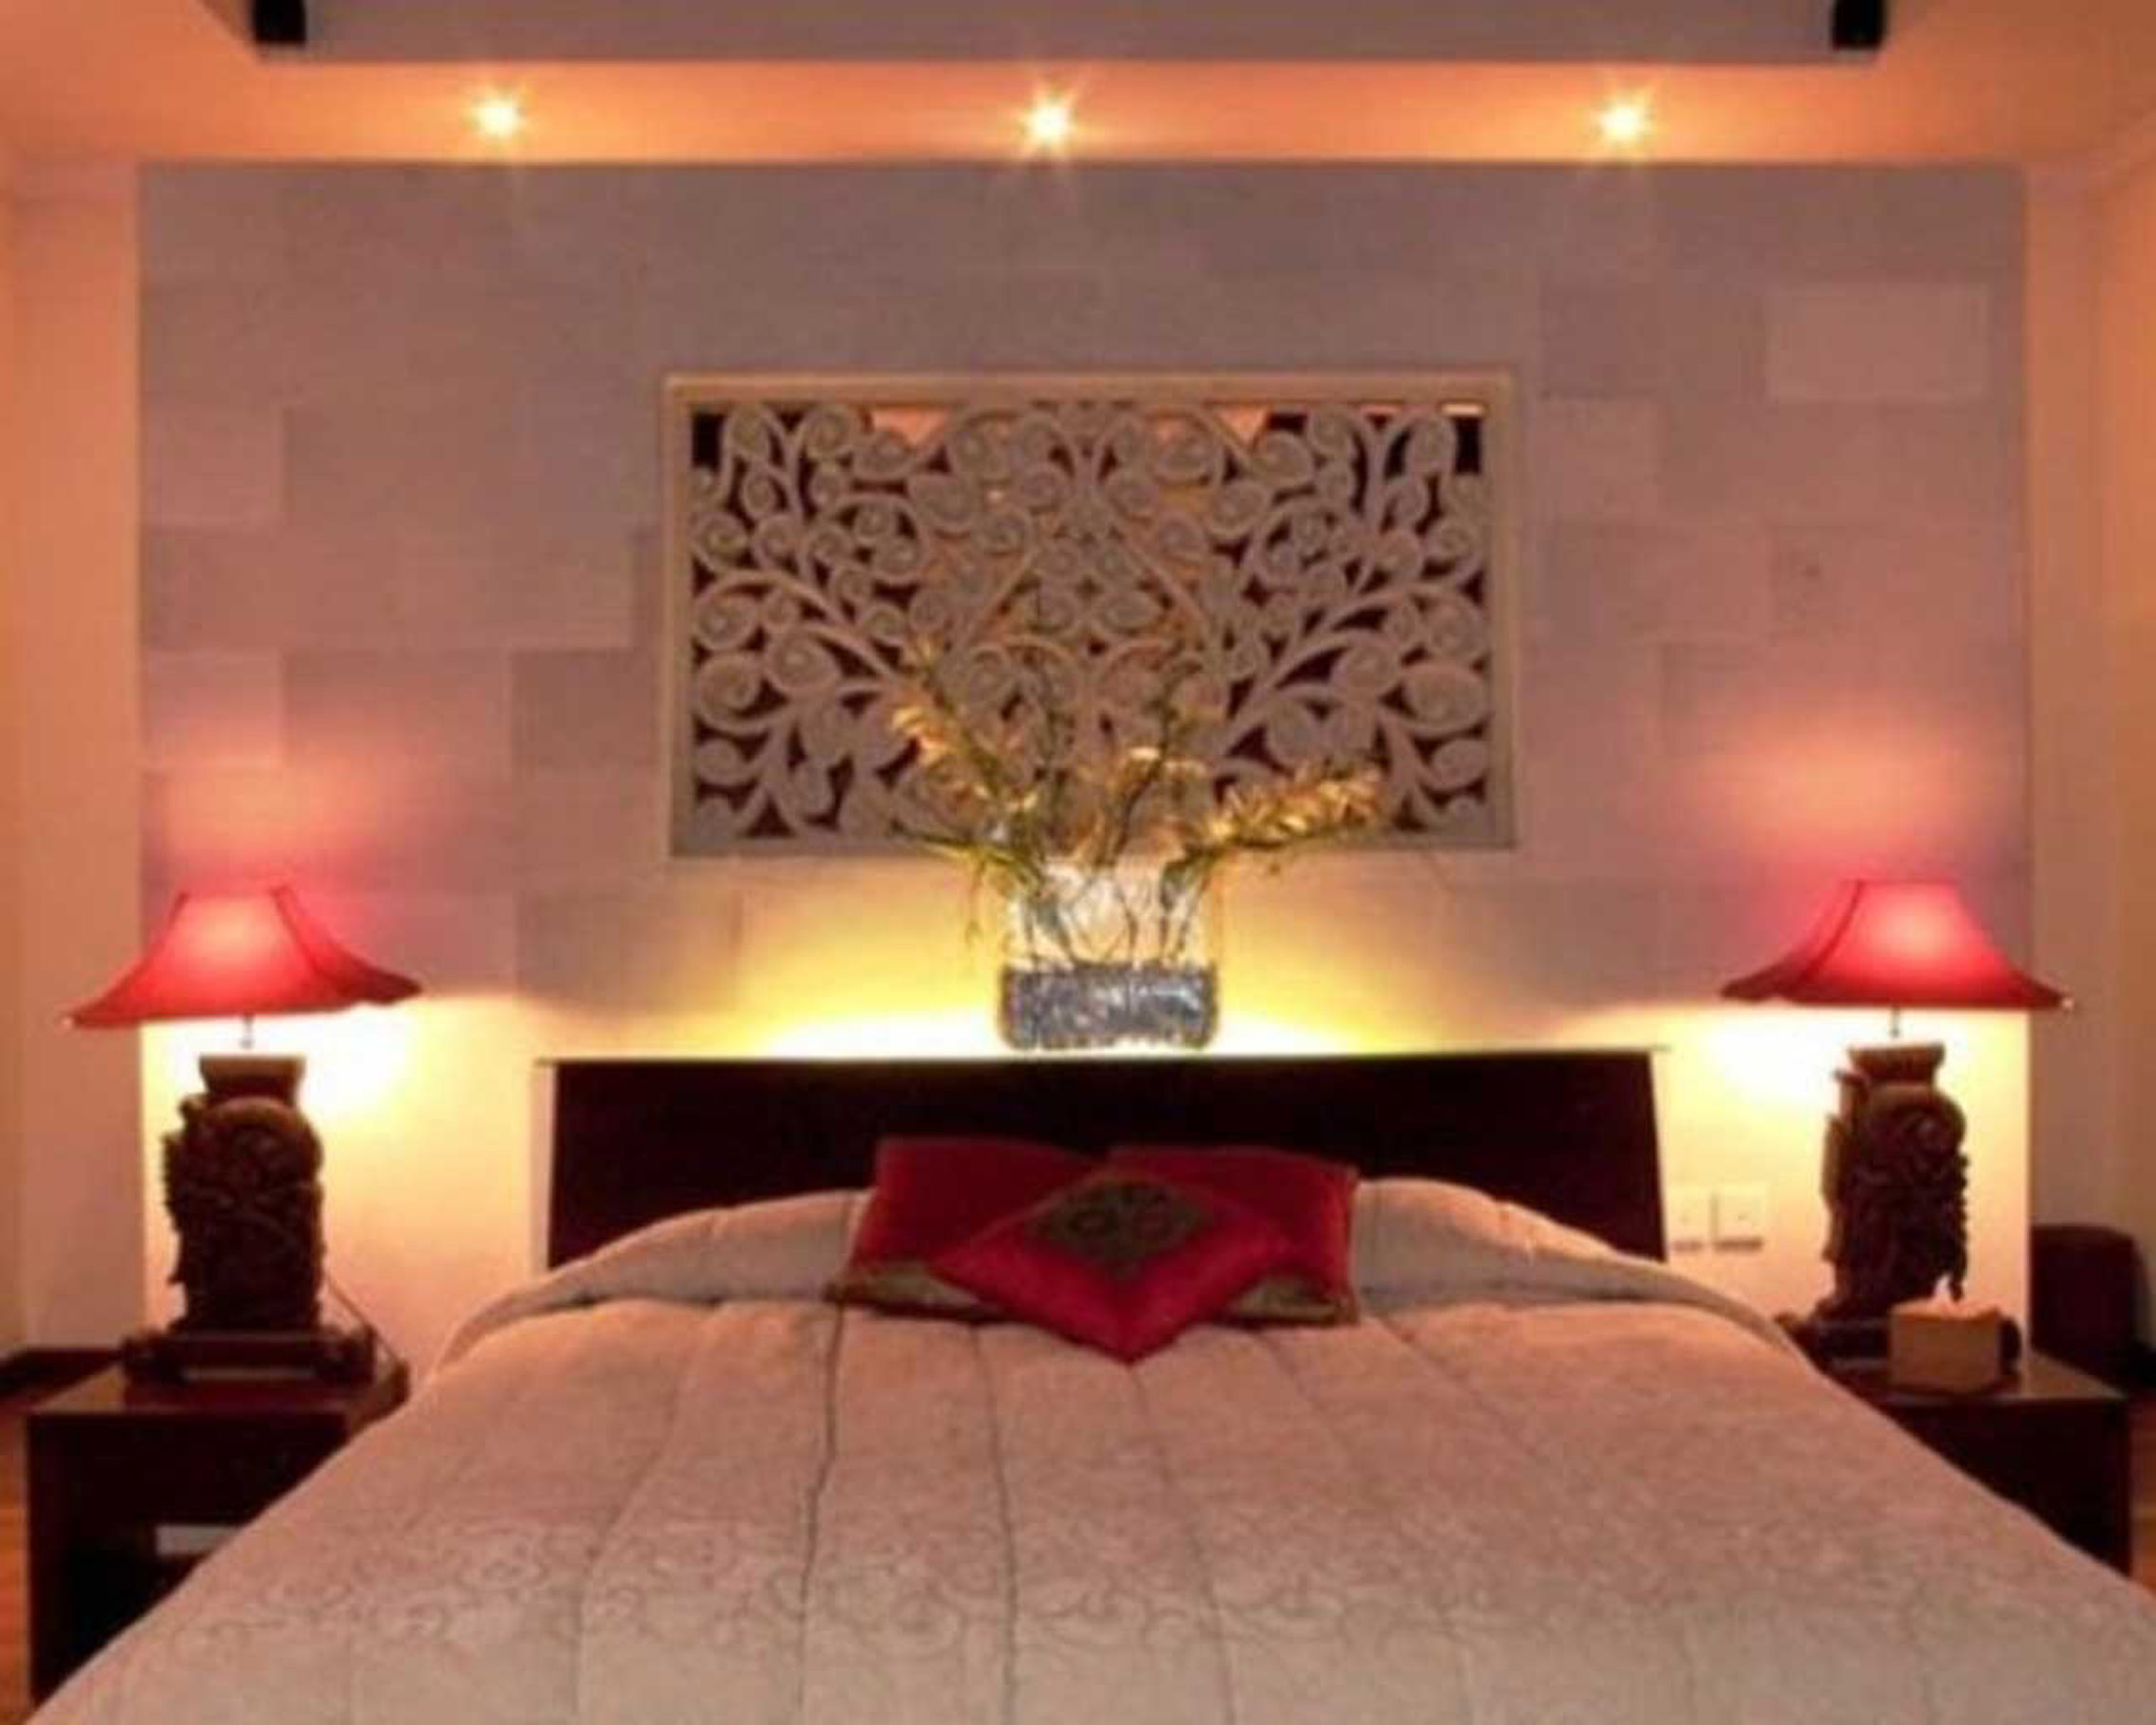 Pretty Dreams Orange Bedroom Lighting With Traditional Culture Style Modern Bedroom Lighting Design Ideas (Image 19 of 28)